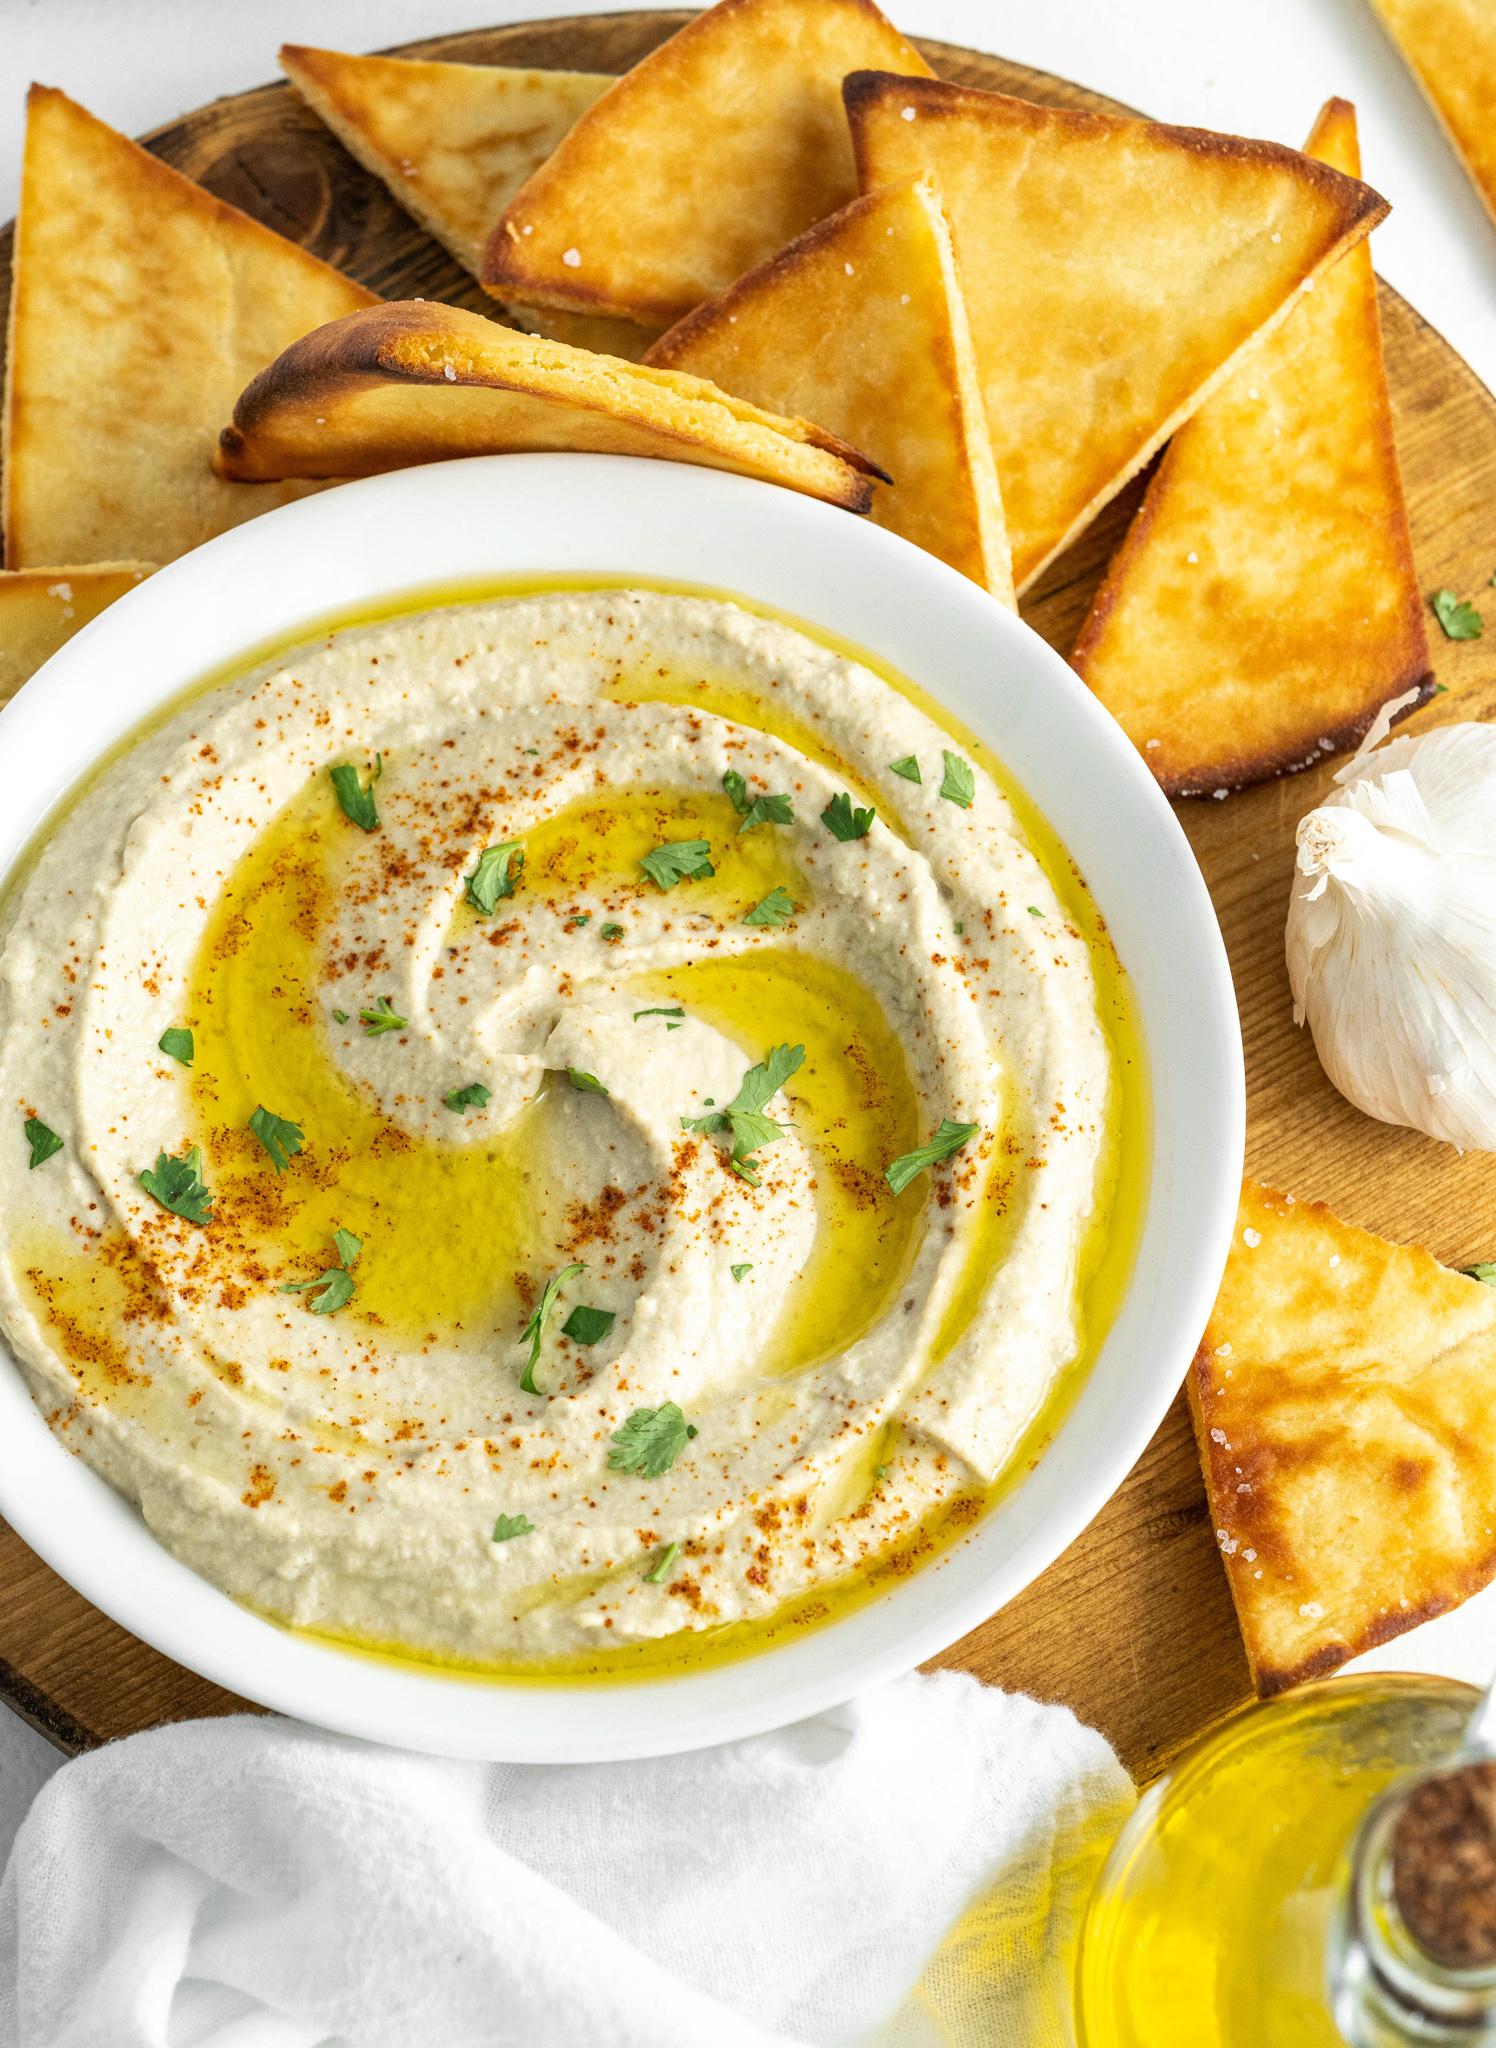 Baba Ghanoush in a white bowl.